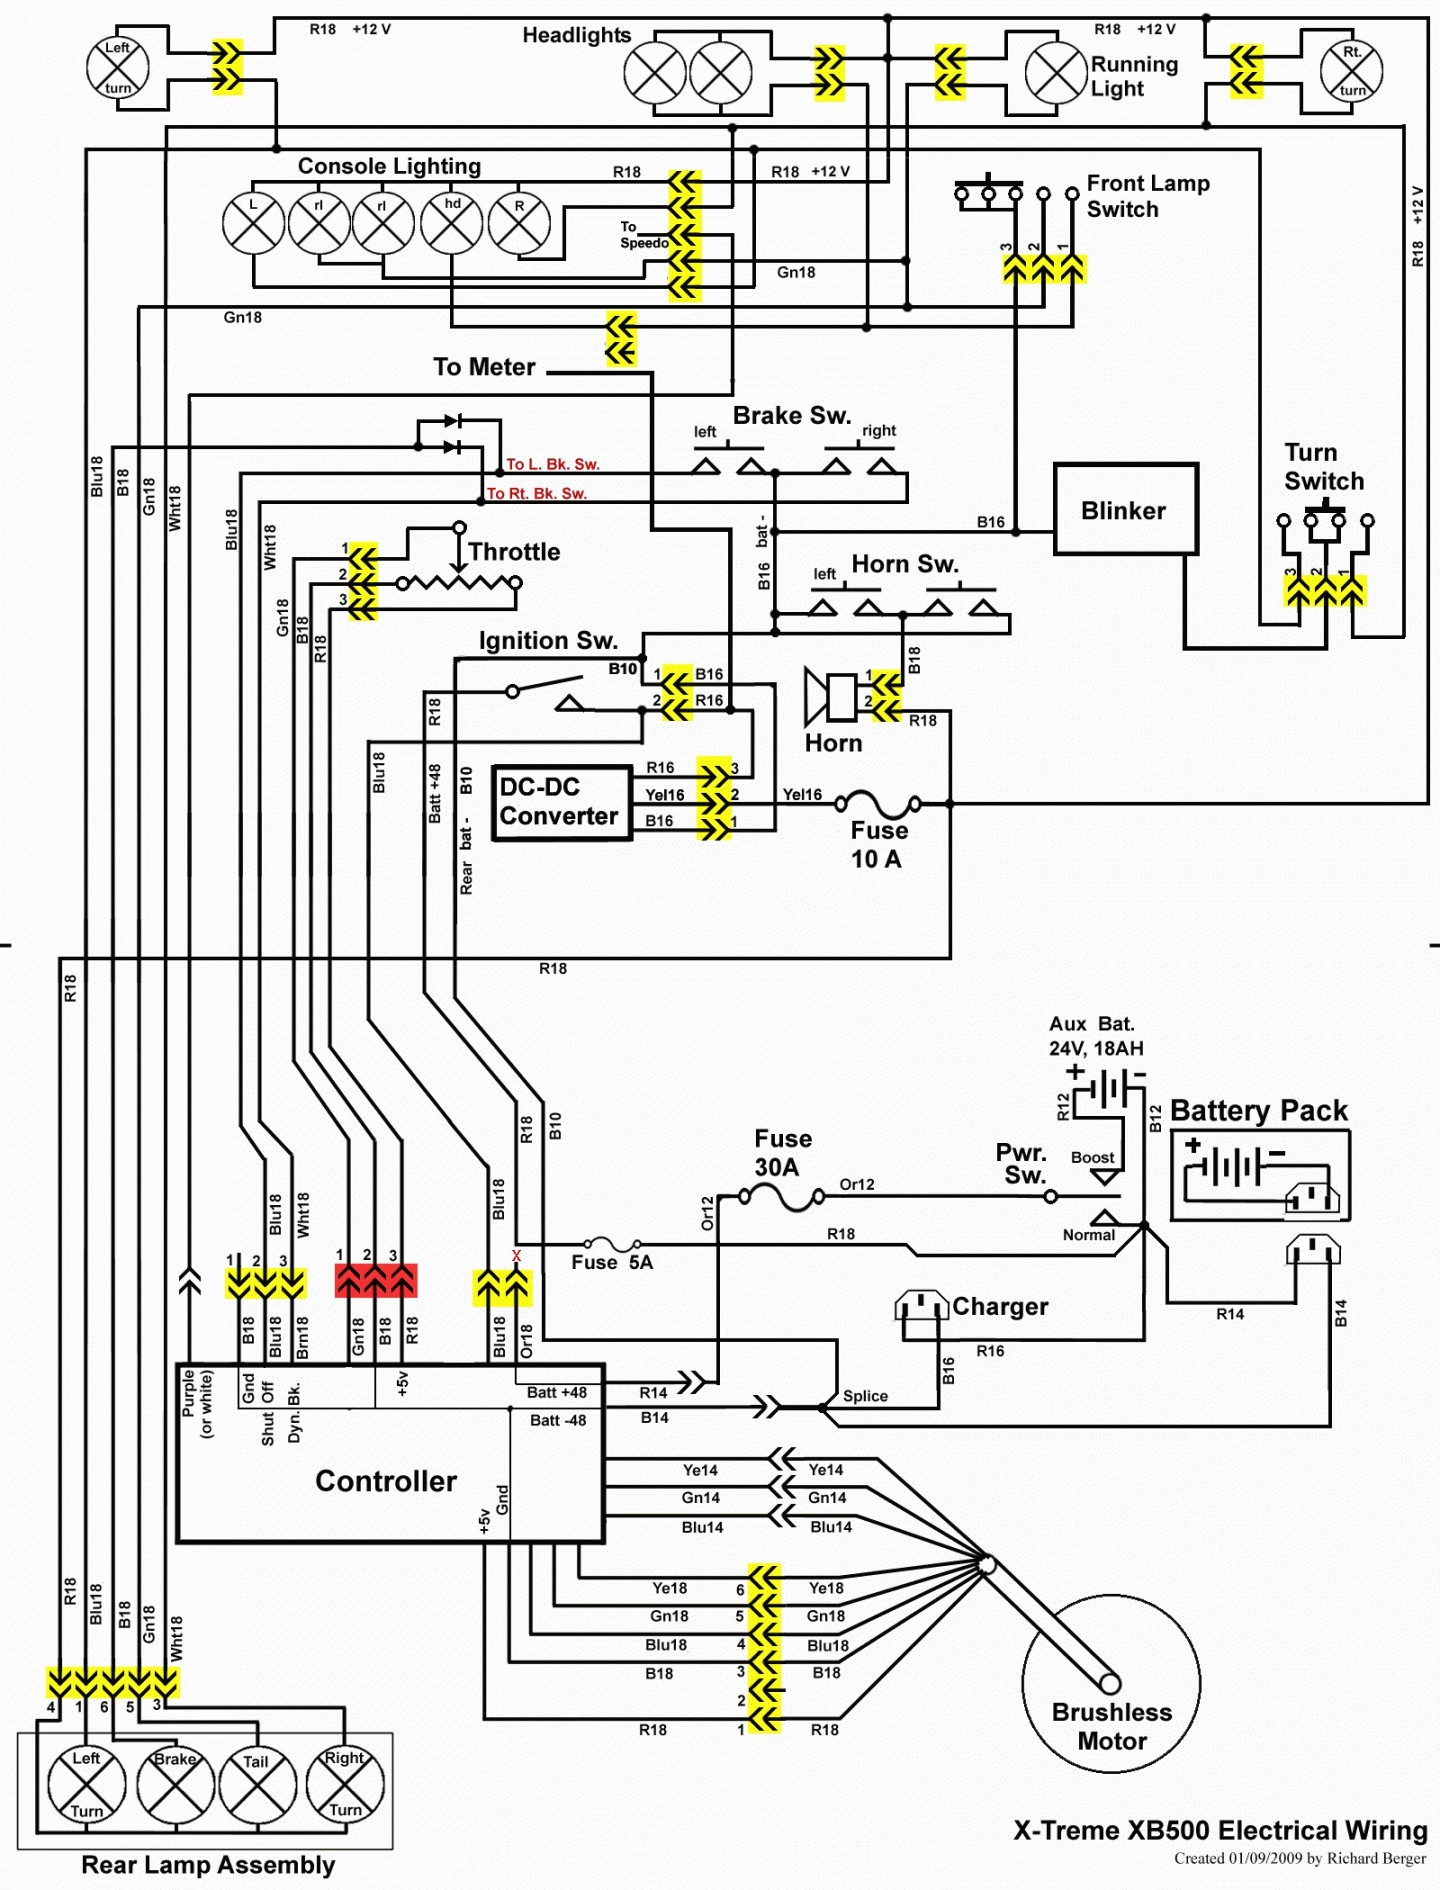 Tao 50cc Scooter Wiring Diagram - Wiring Diagrams Vip Cc Scooter Wiring Diagram Pictures on